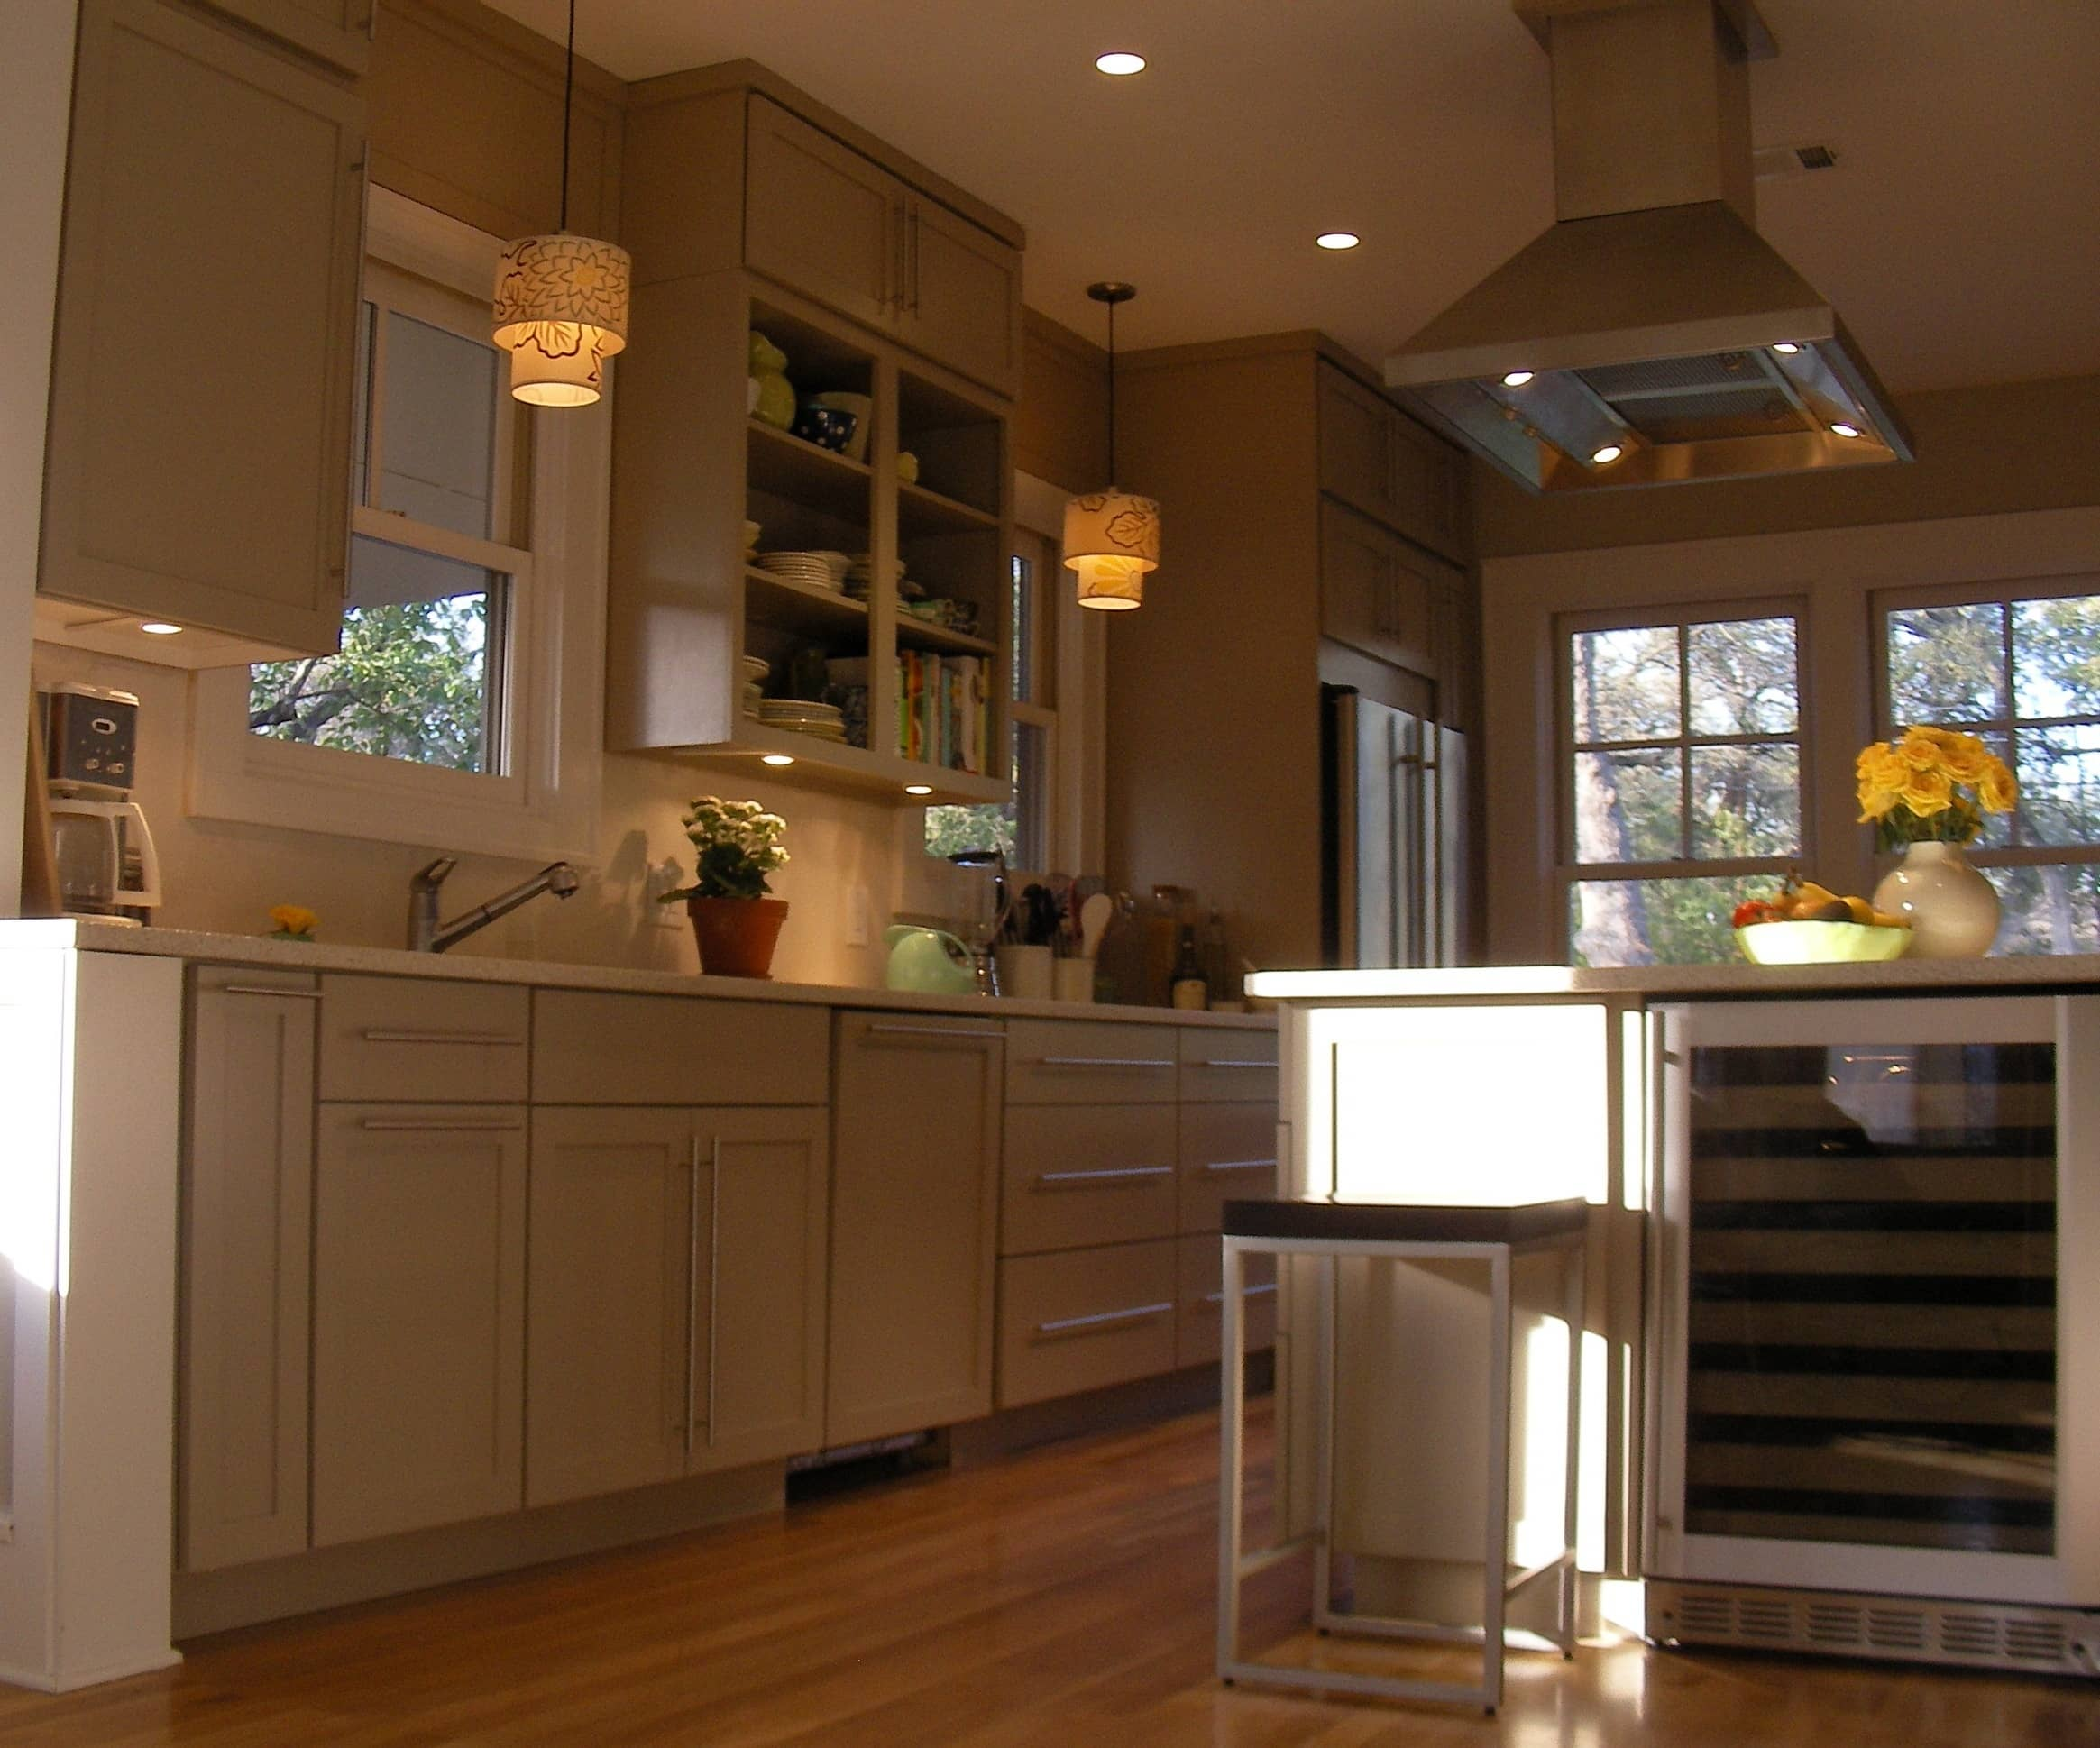 Before & After: Kelly Moseley's Calming Austin Kitchen: gallery image 4